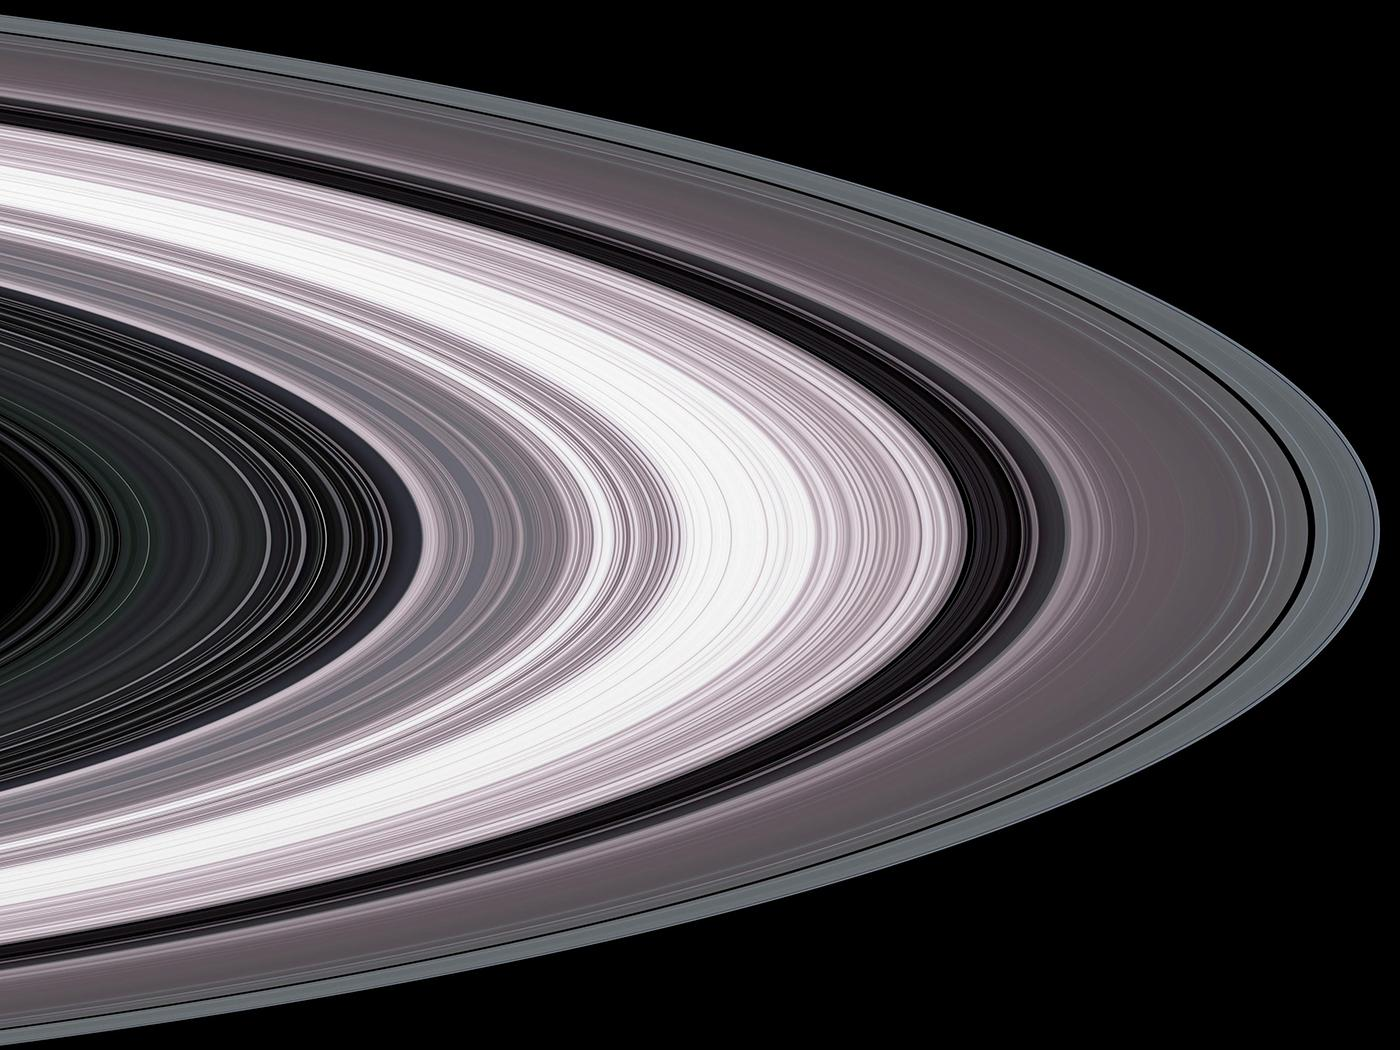 Saturn's rings. Image: Courtesy NASA